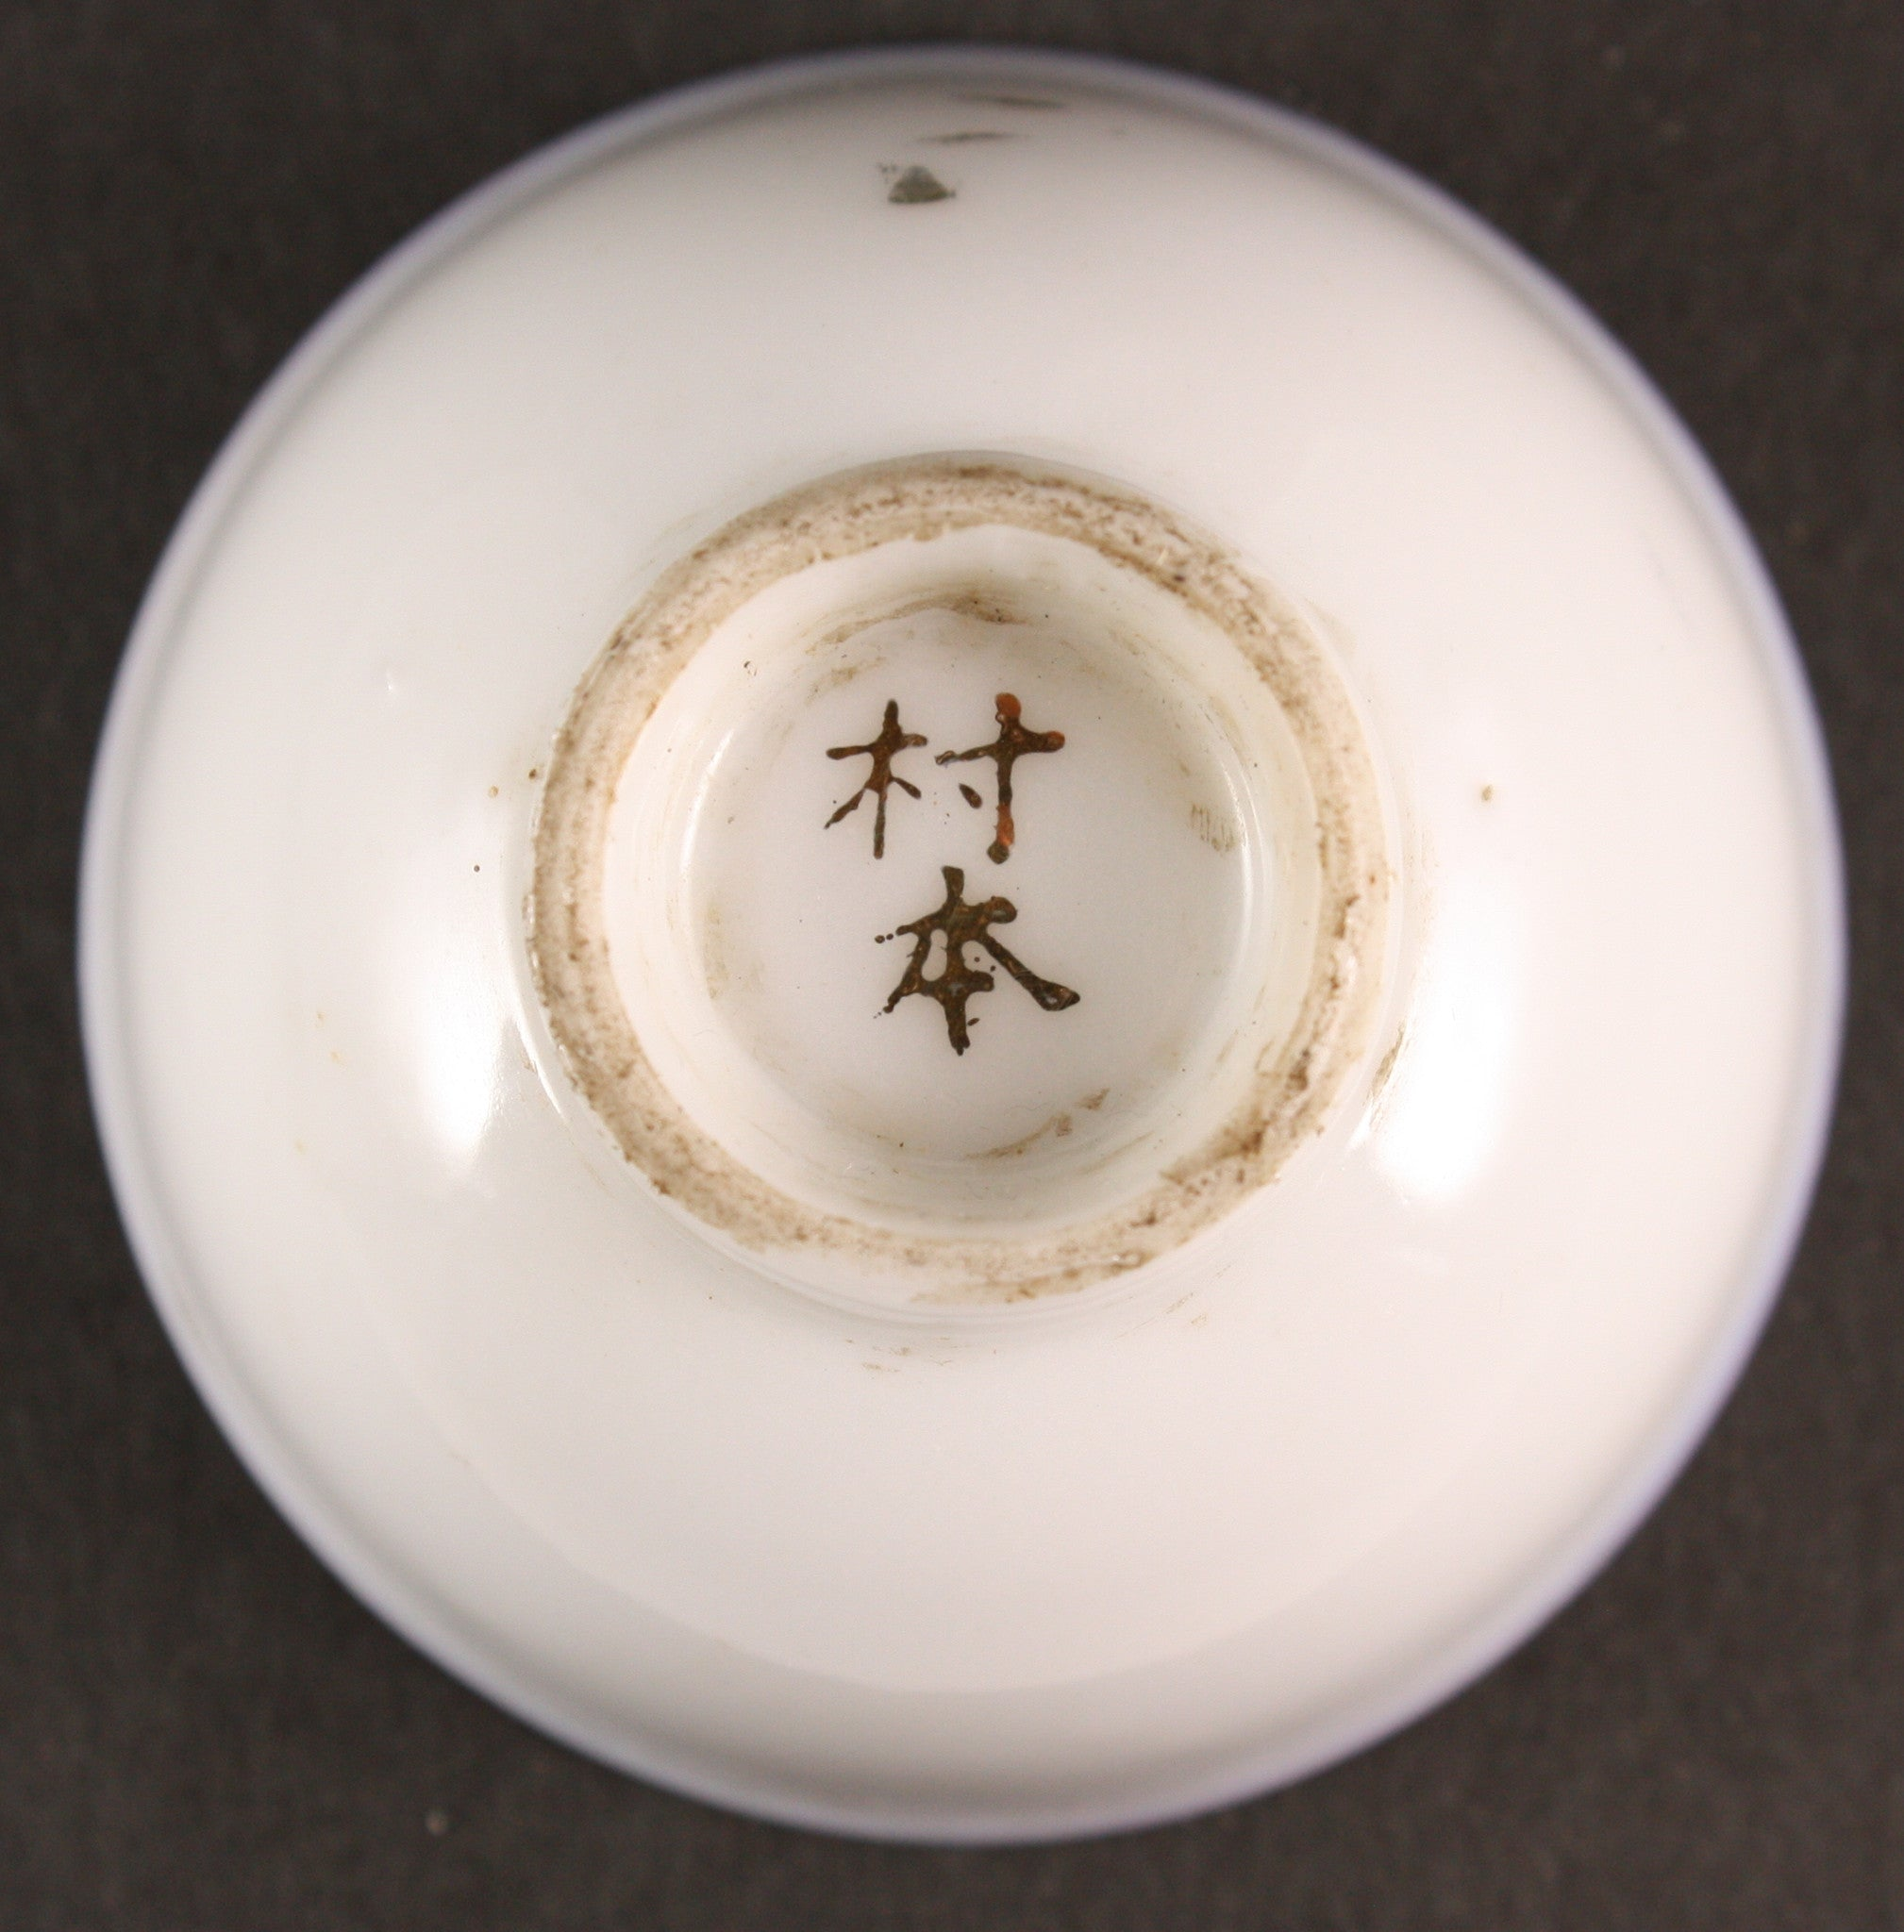 Antique Japanese 1931 Shanghai Incident Dispatch Army Sake Cup